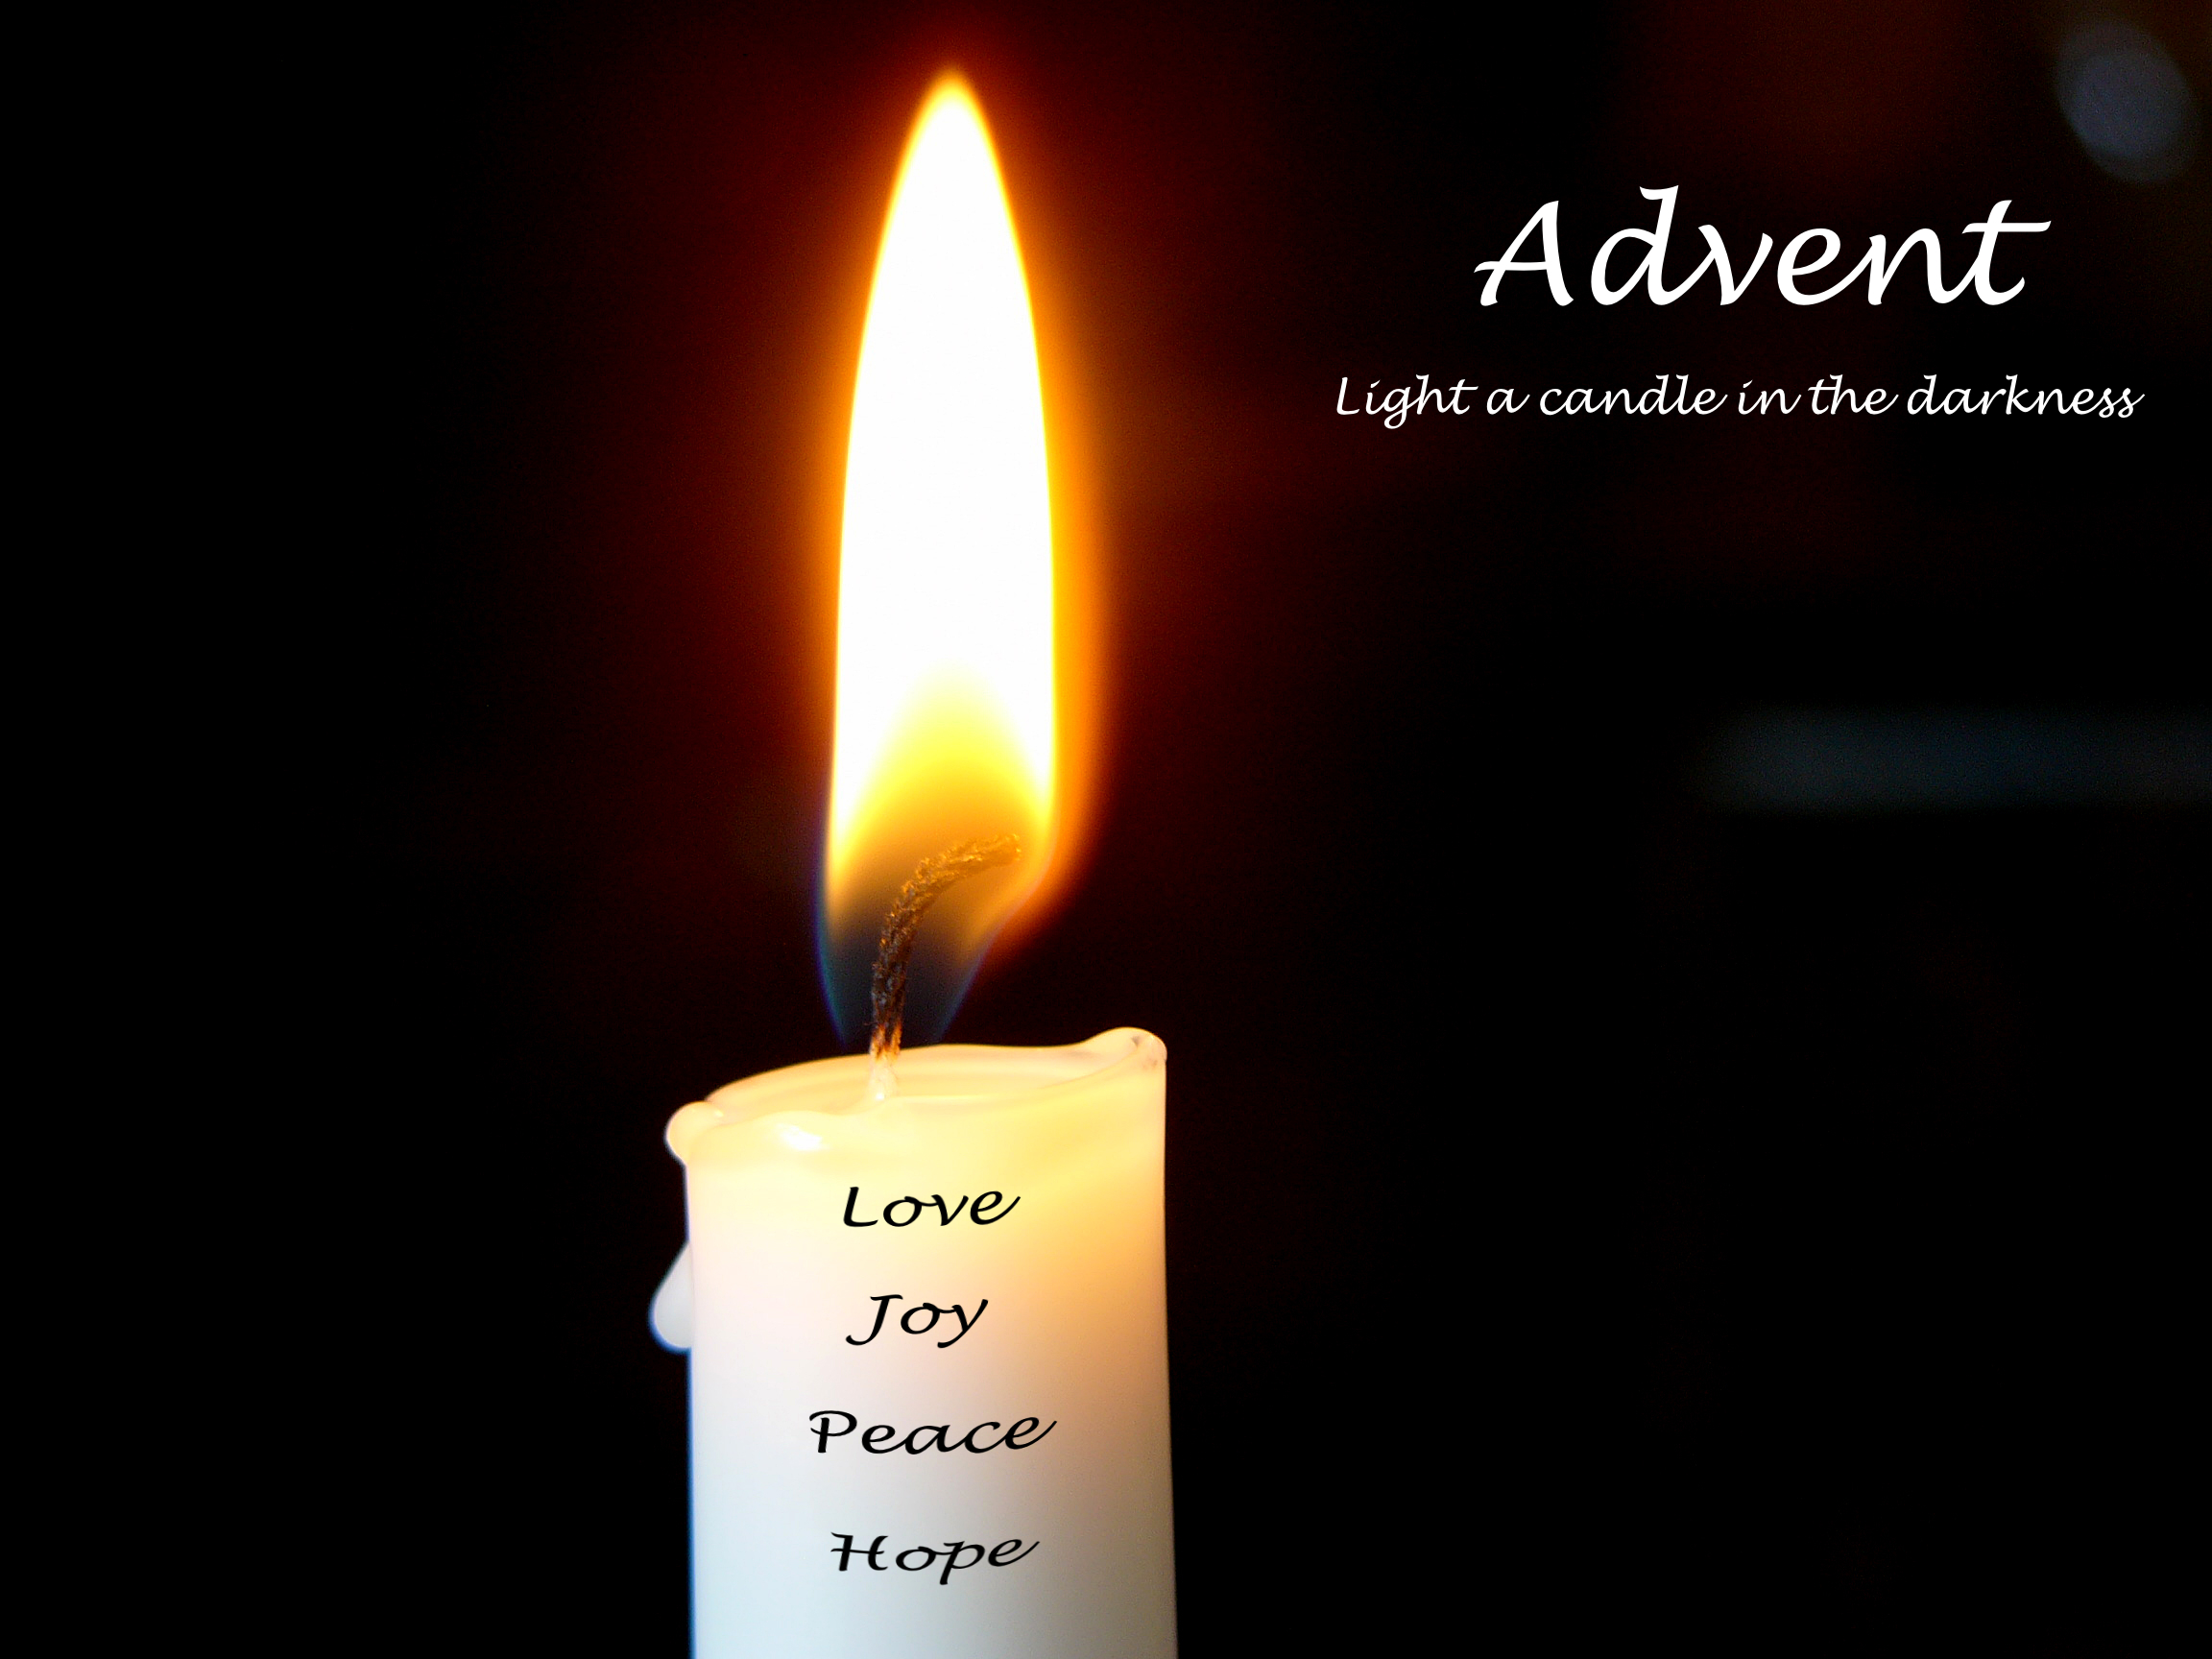 Light A Candle In The Darkness | revster's ramblings